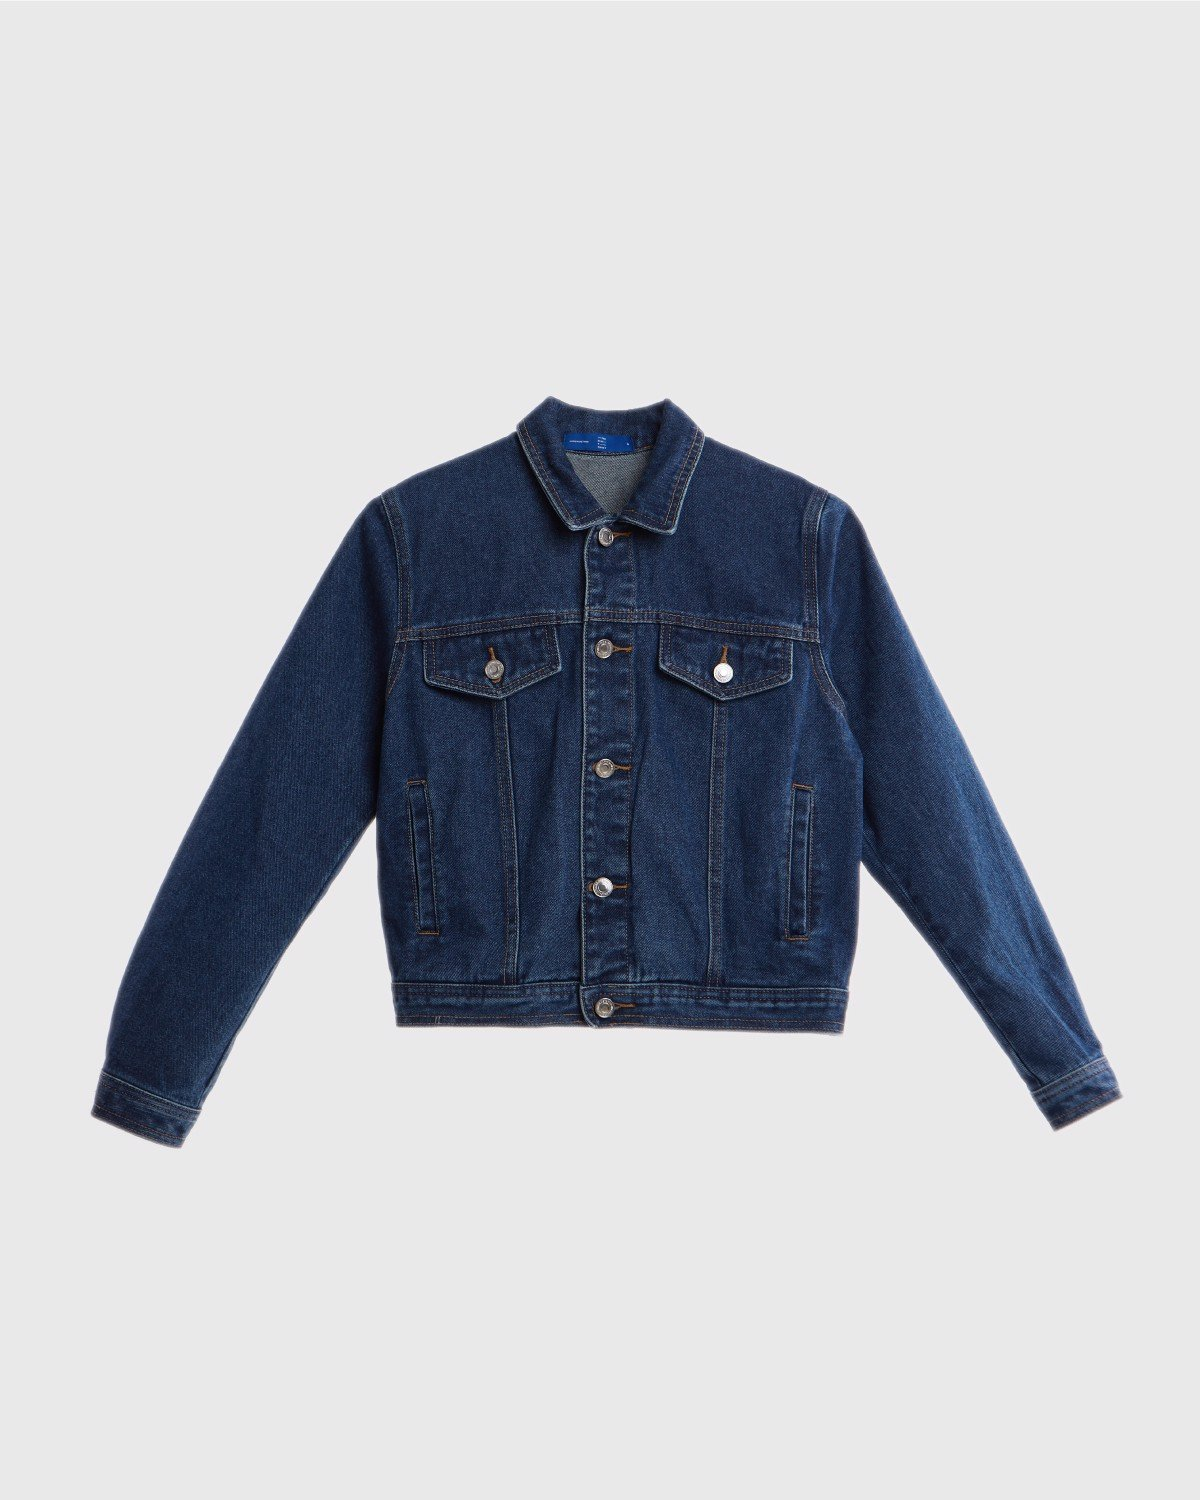 Blue Dream Jean Jacket - Ever Blue